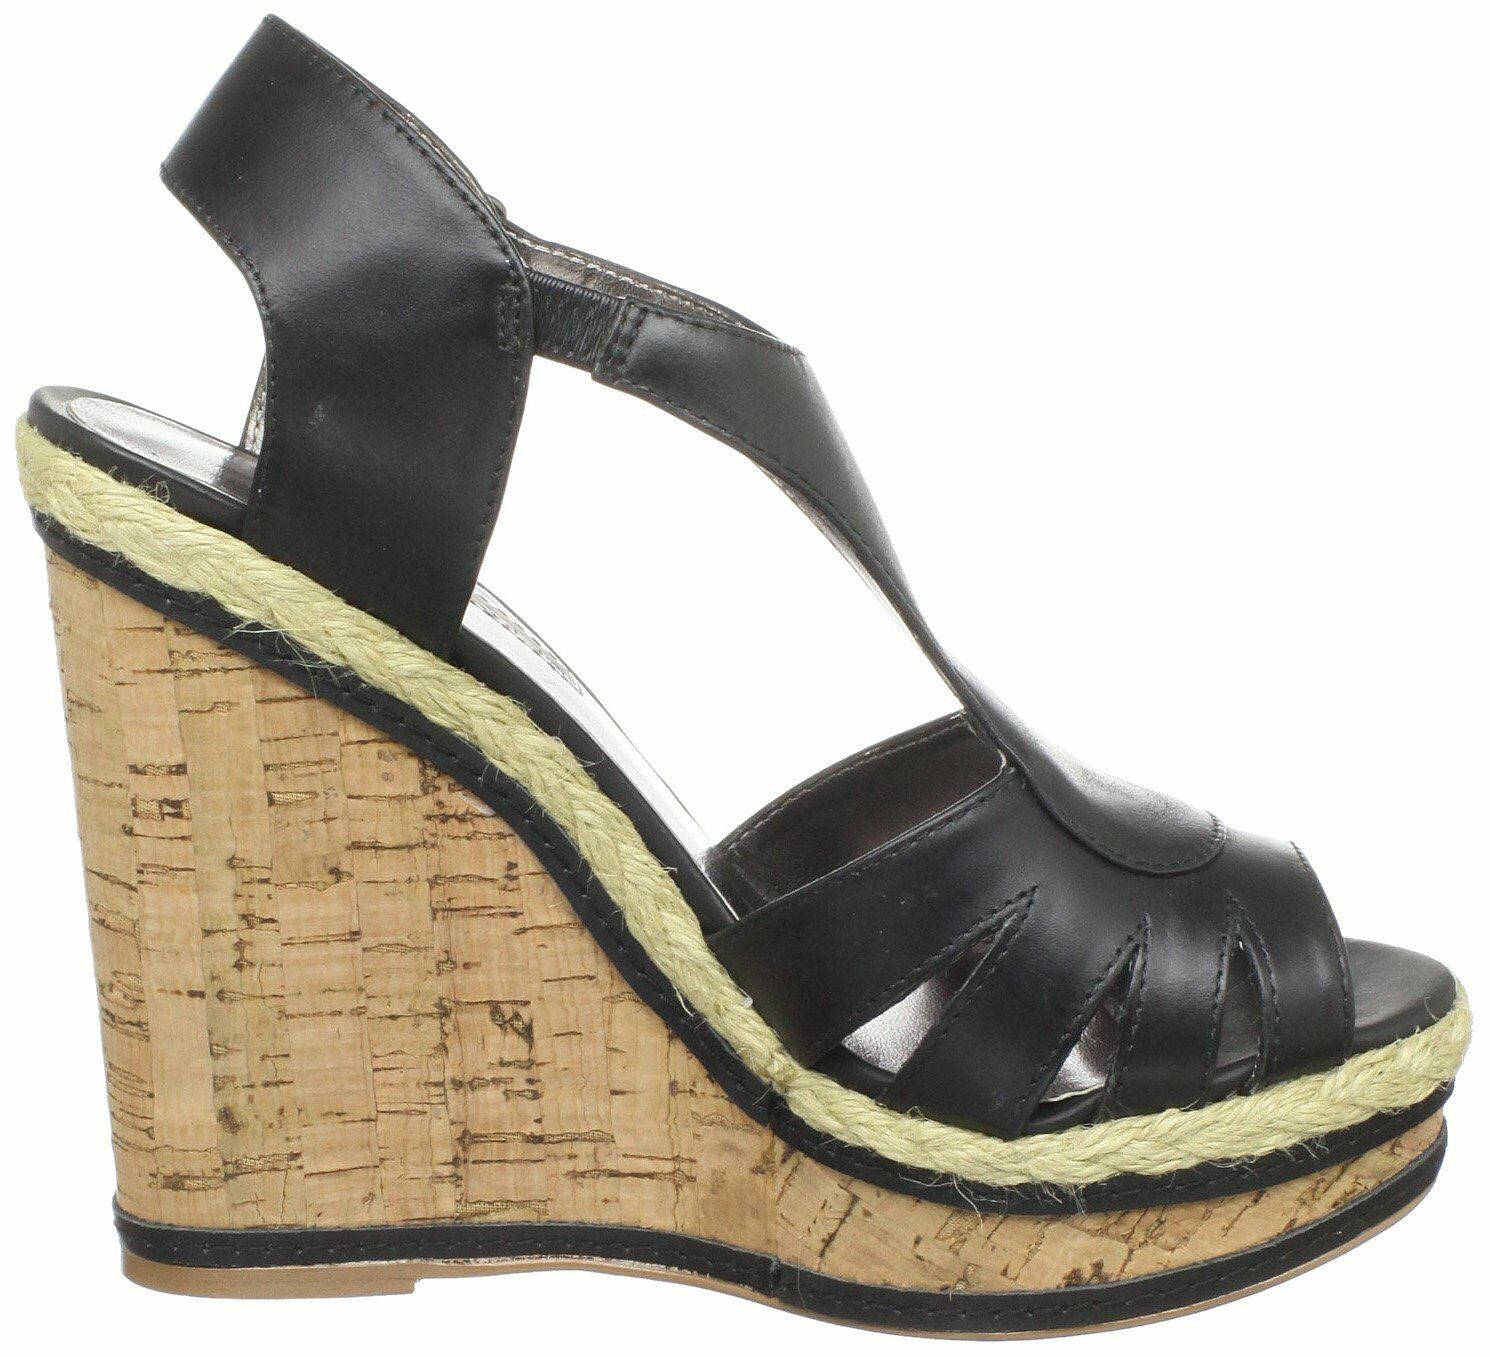 New Charles David Women's Granite Granite Granite Wedge shoes   sandals size 9   135 0ca325